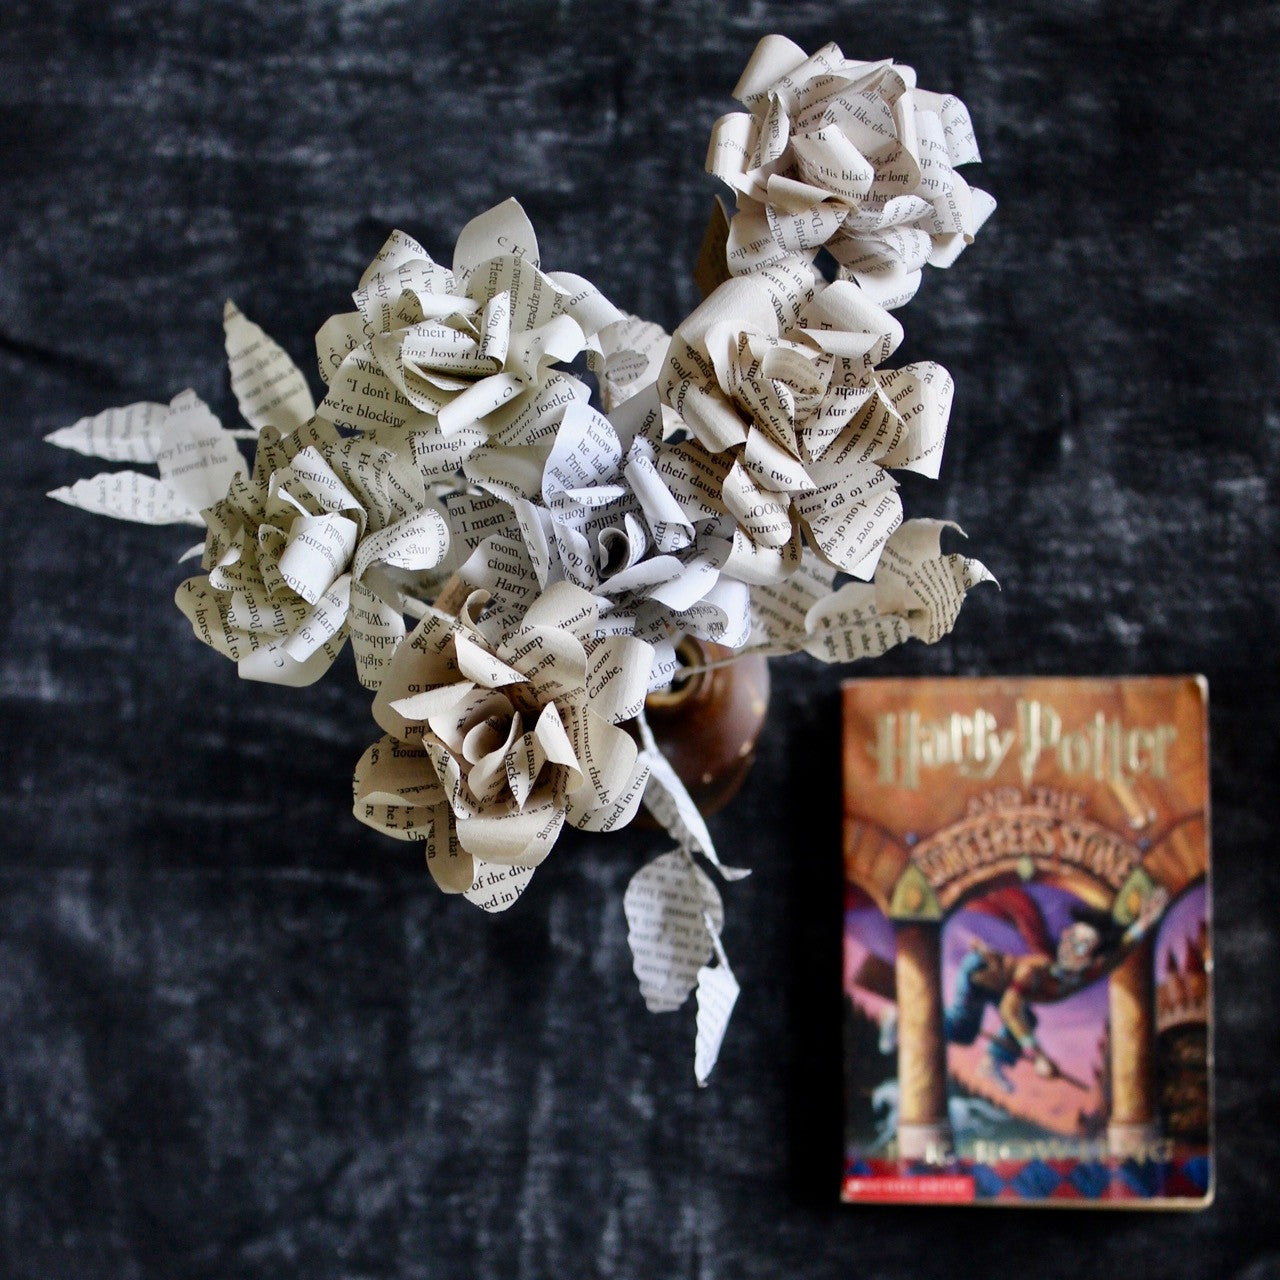 Harry Potter Roses